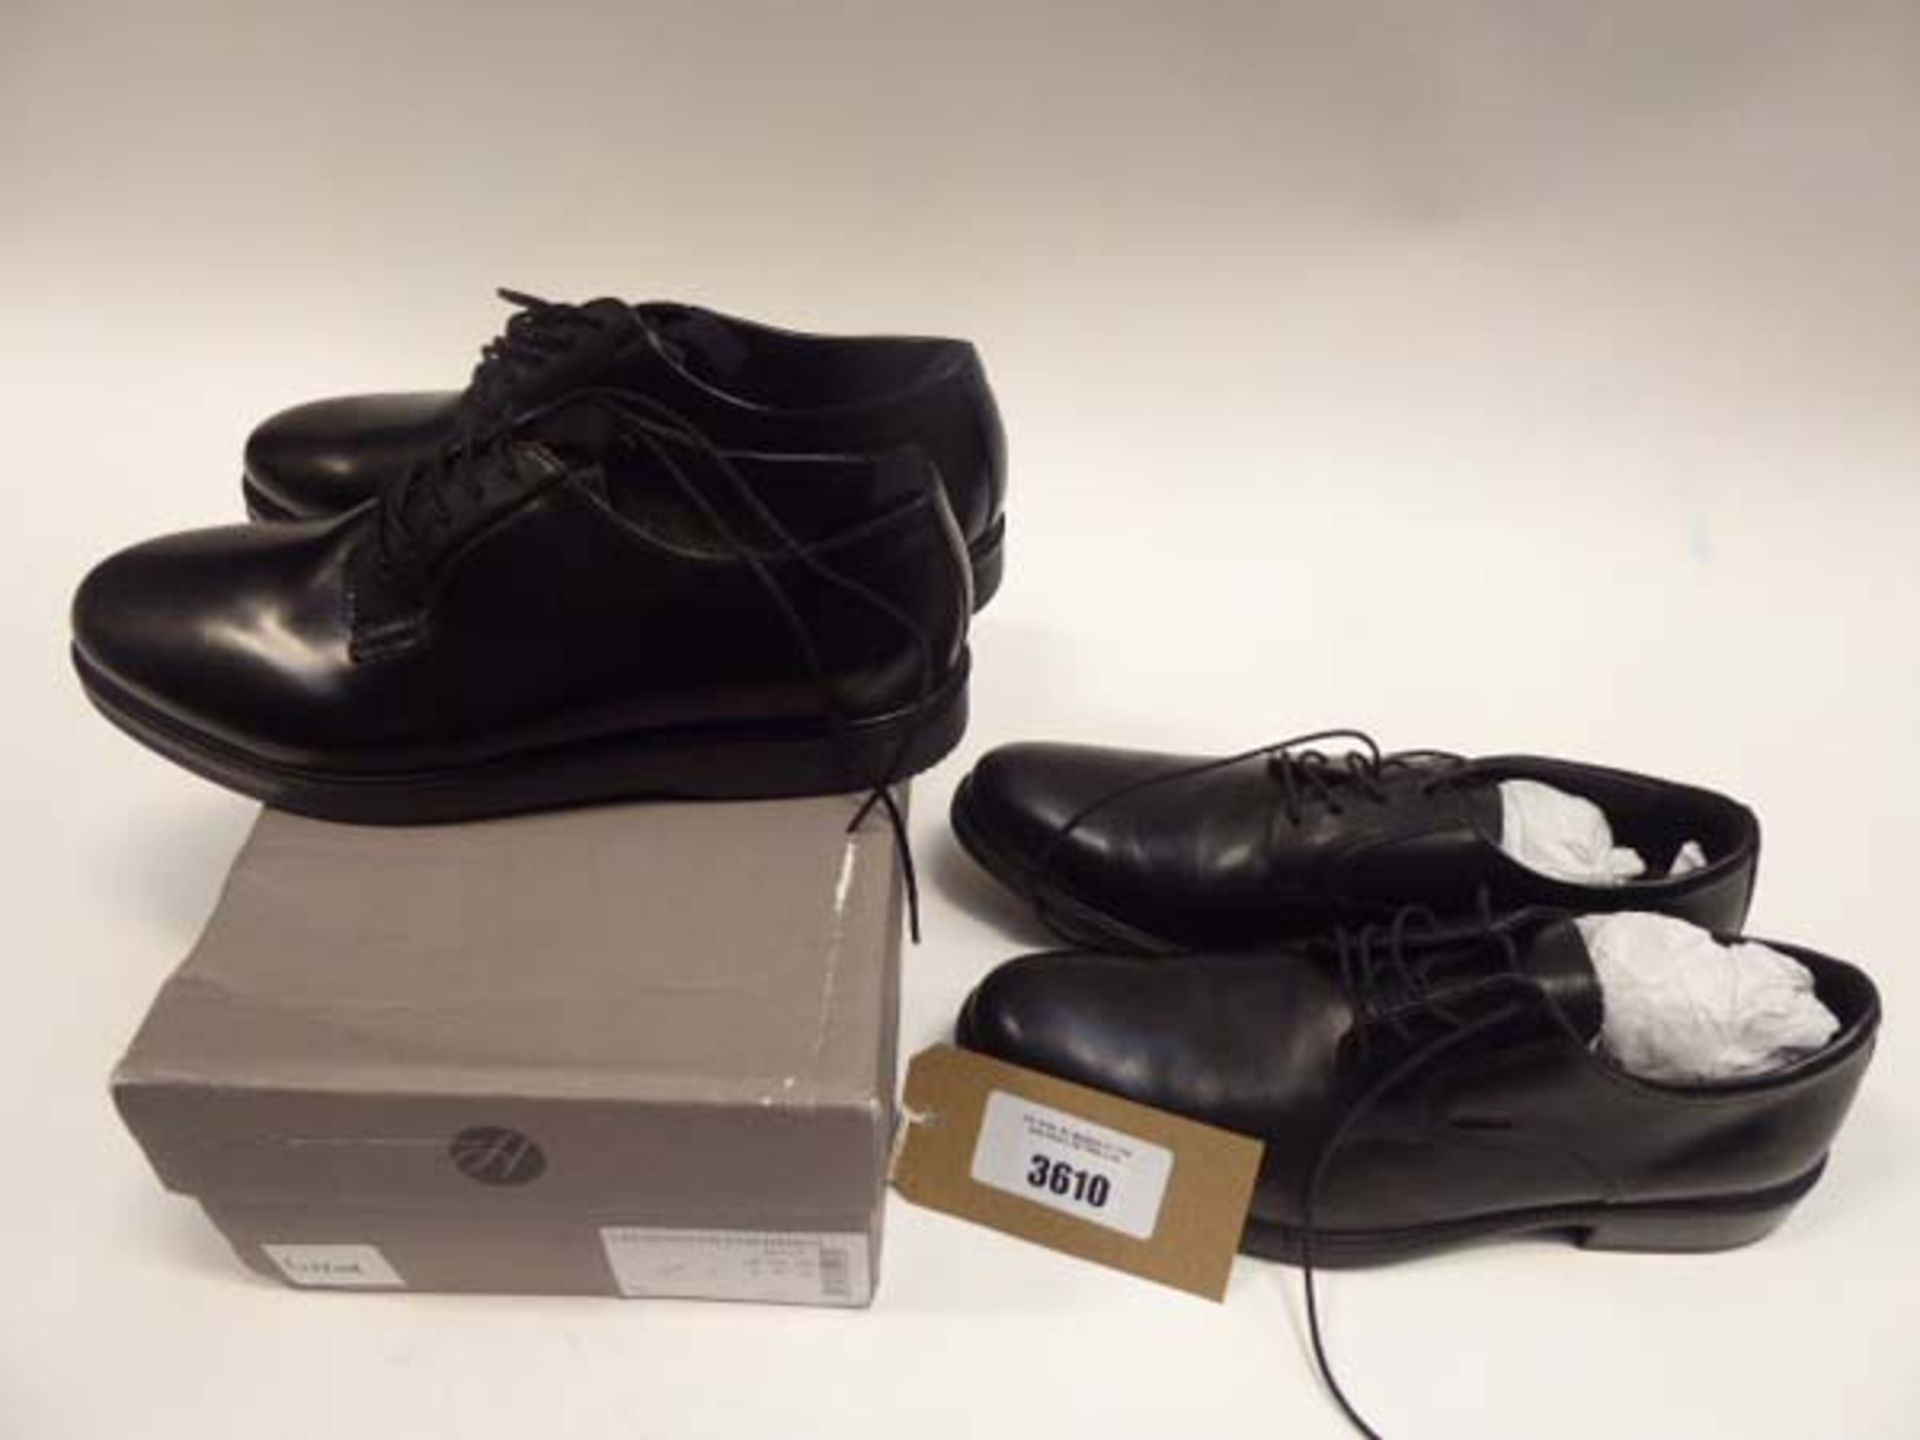 Hudson Calverston Postman leather shoes size 9 and a pair of Geox leather shoes size EU 43.5